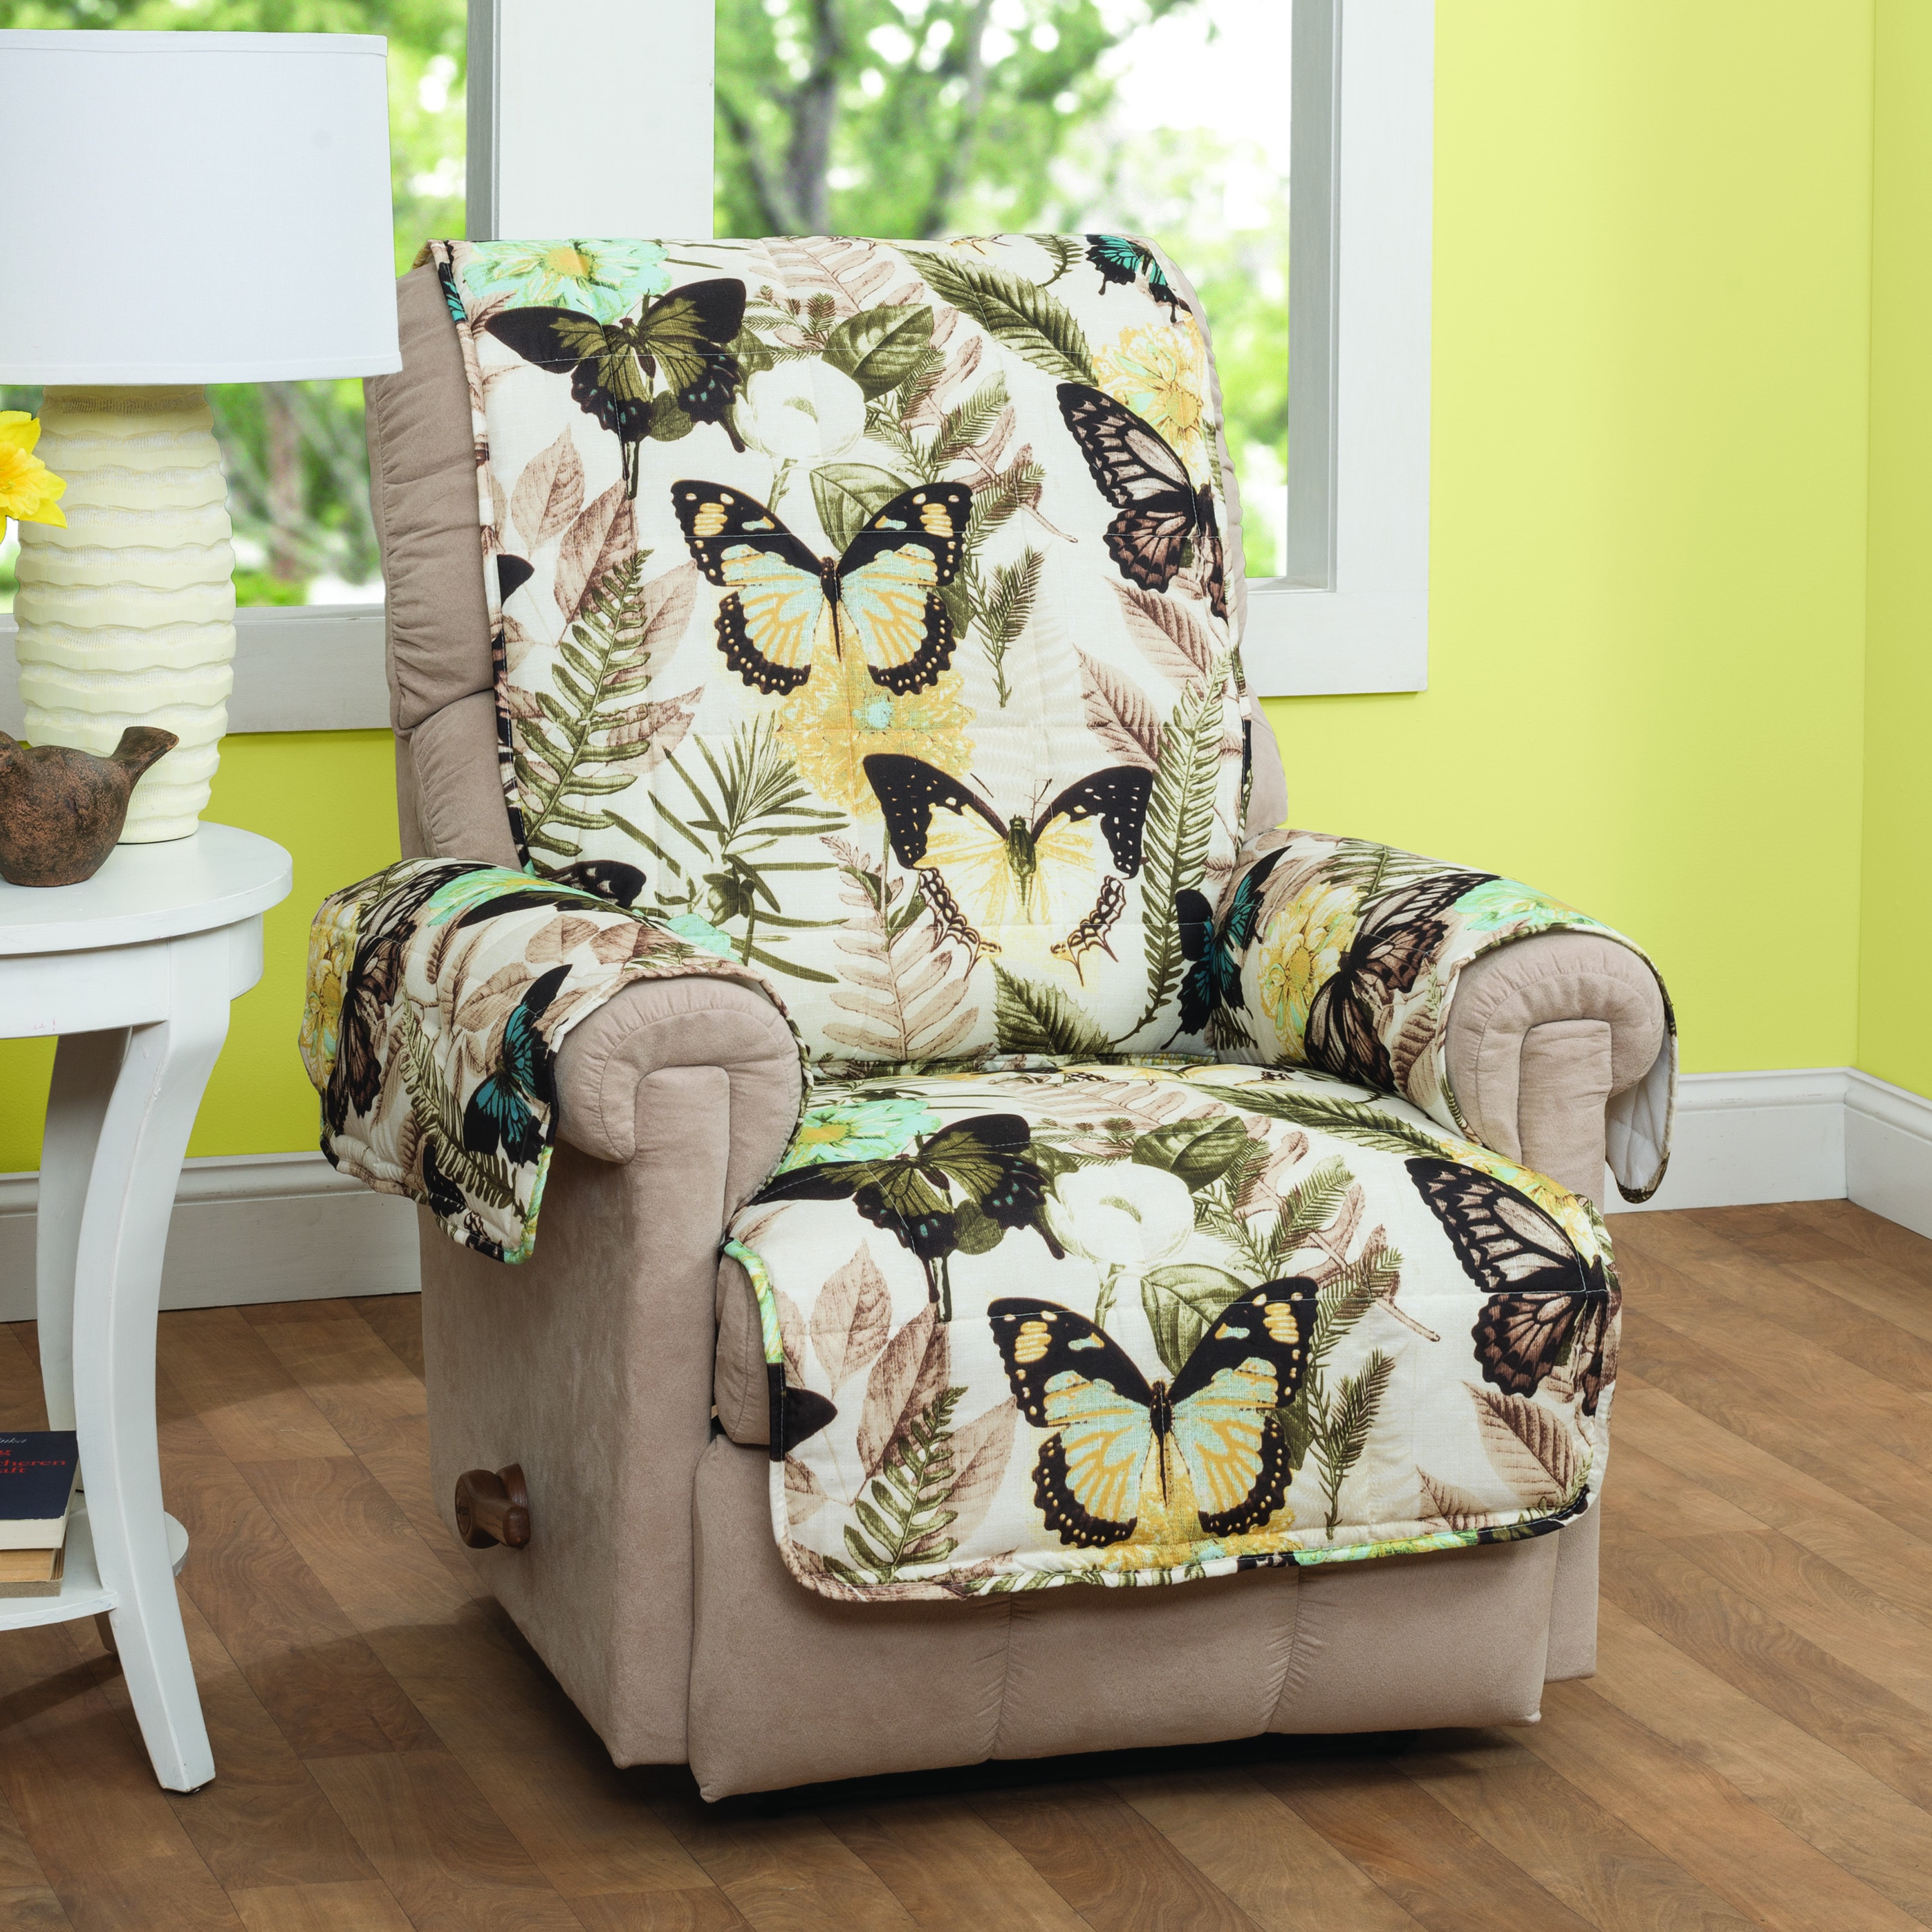 Innovative Textile Solutions Butterfly Recliner or Wing Chair Protector (Multi)